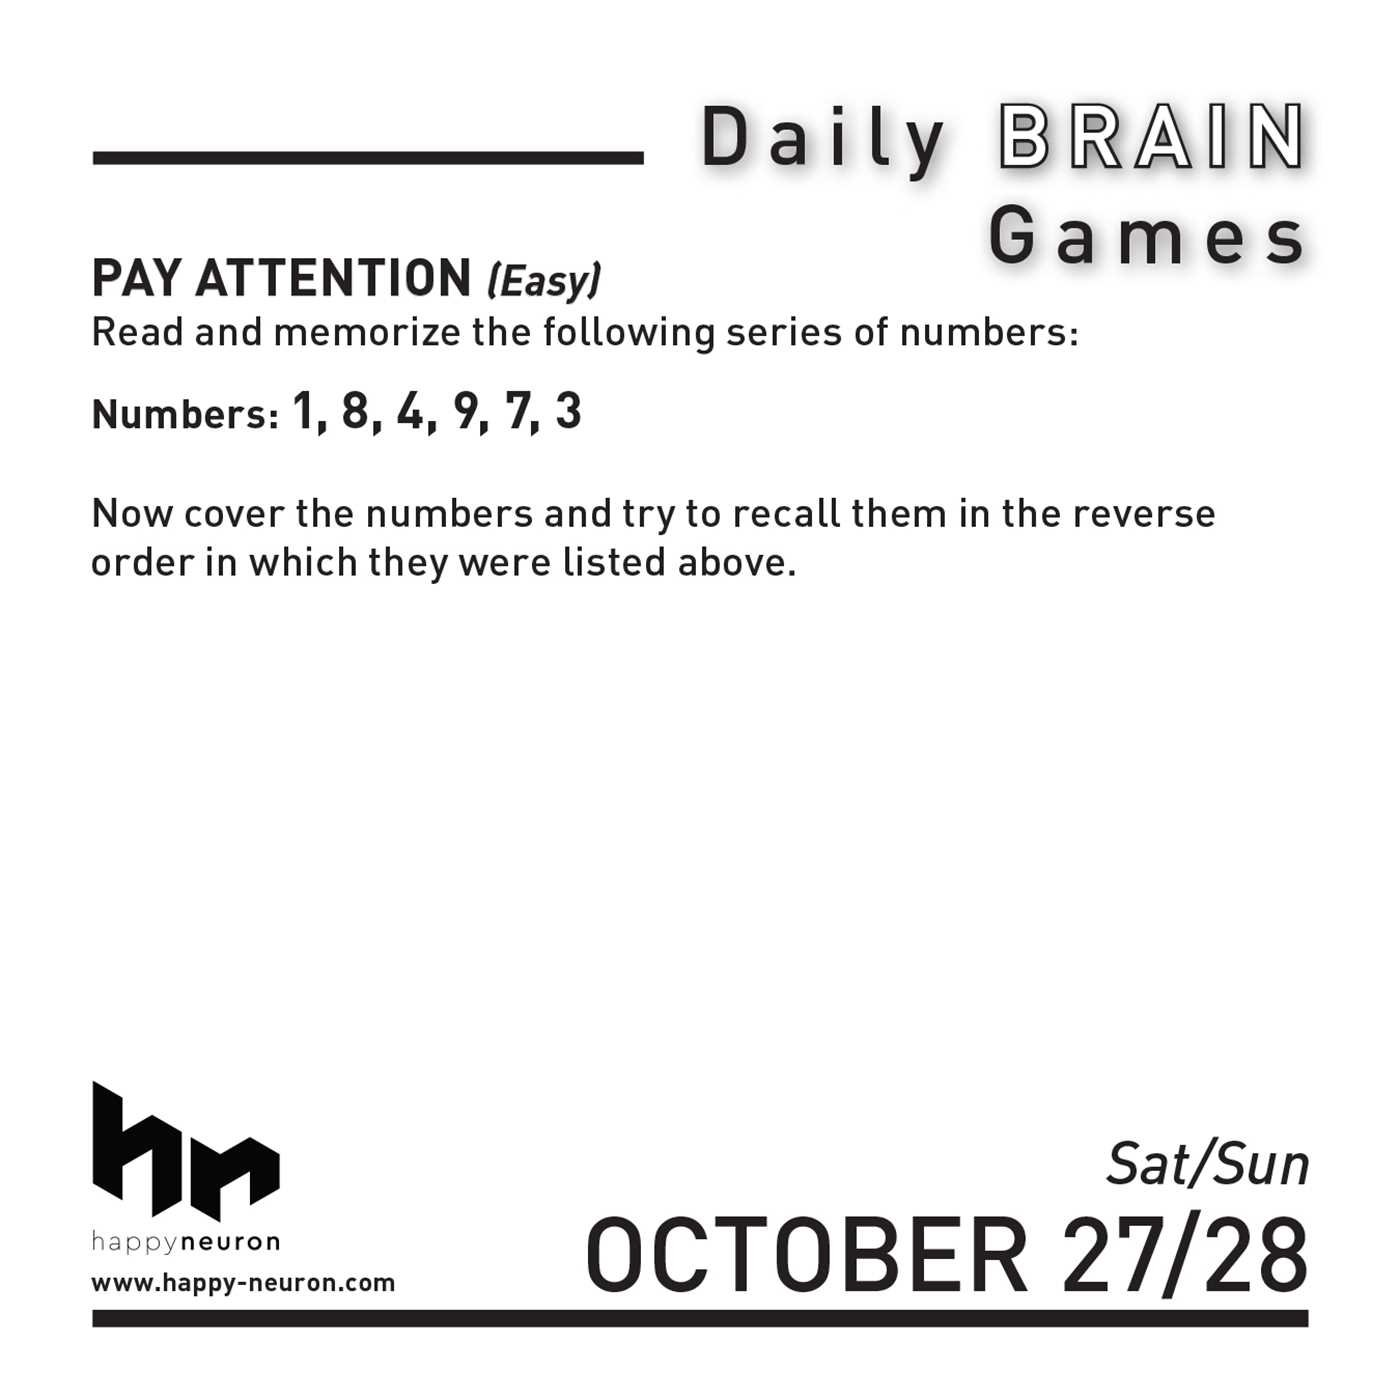 Daily Brain Games 2018 Day-to-Day Calendar: HAPPYneuron